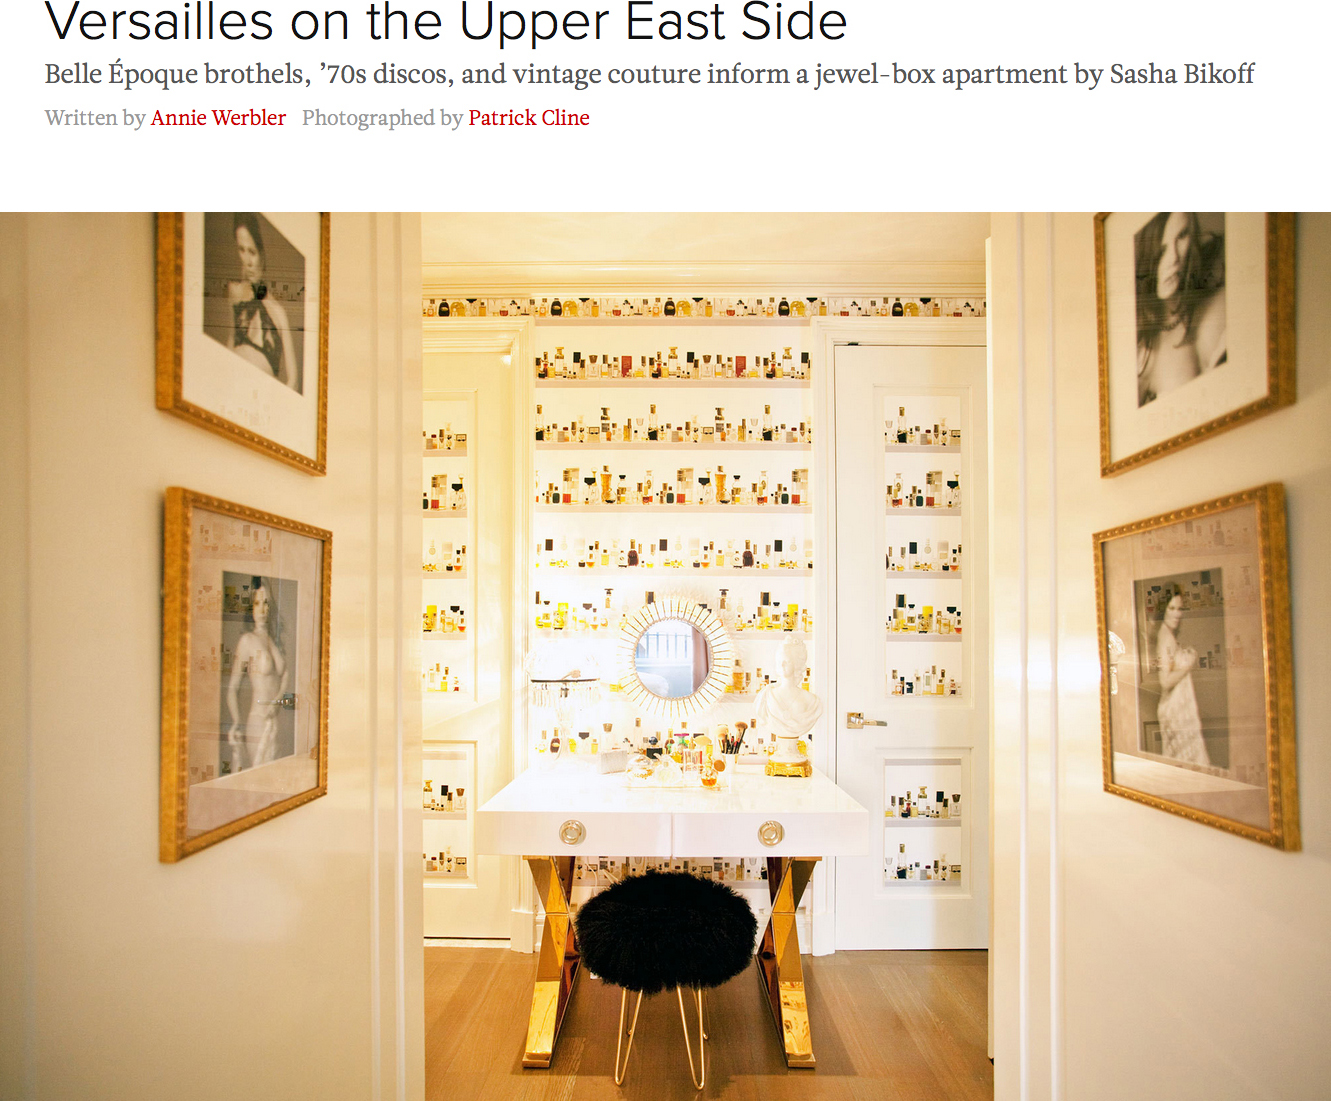 Versailles on the Upper East Side